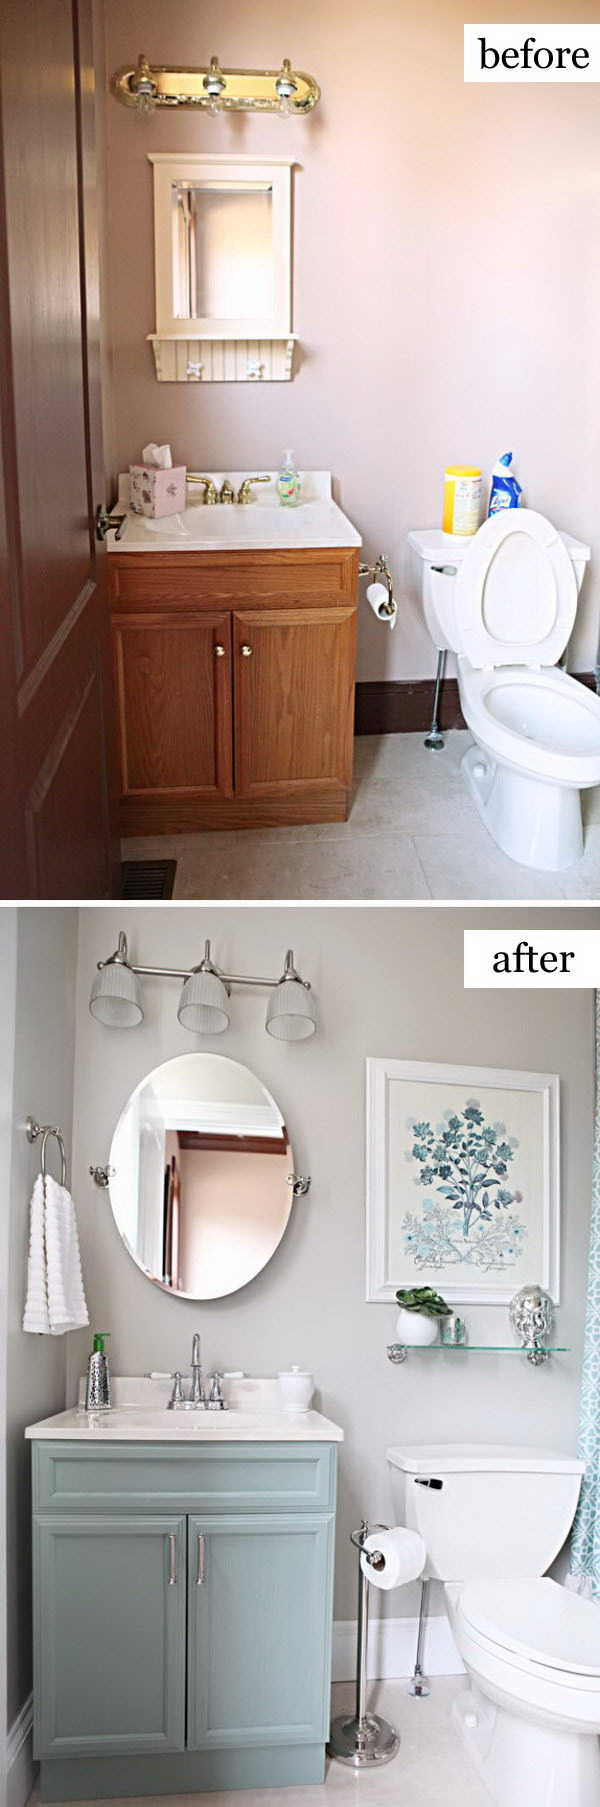 Before and After Makeovers: 20+ Most Beautiful Bathroom ... on Bathroom Renovation Ideas  id=65214